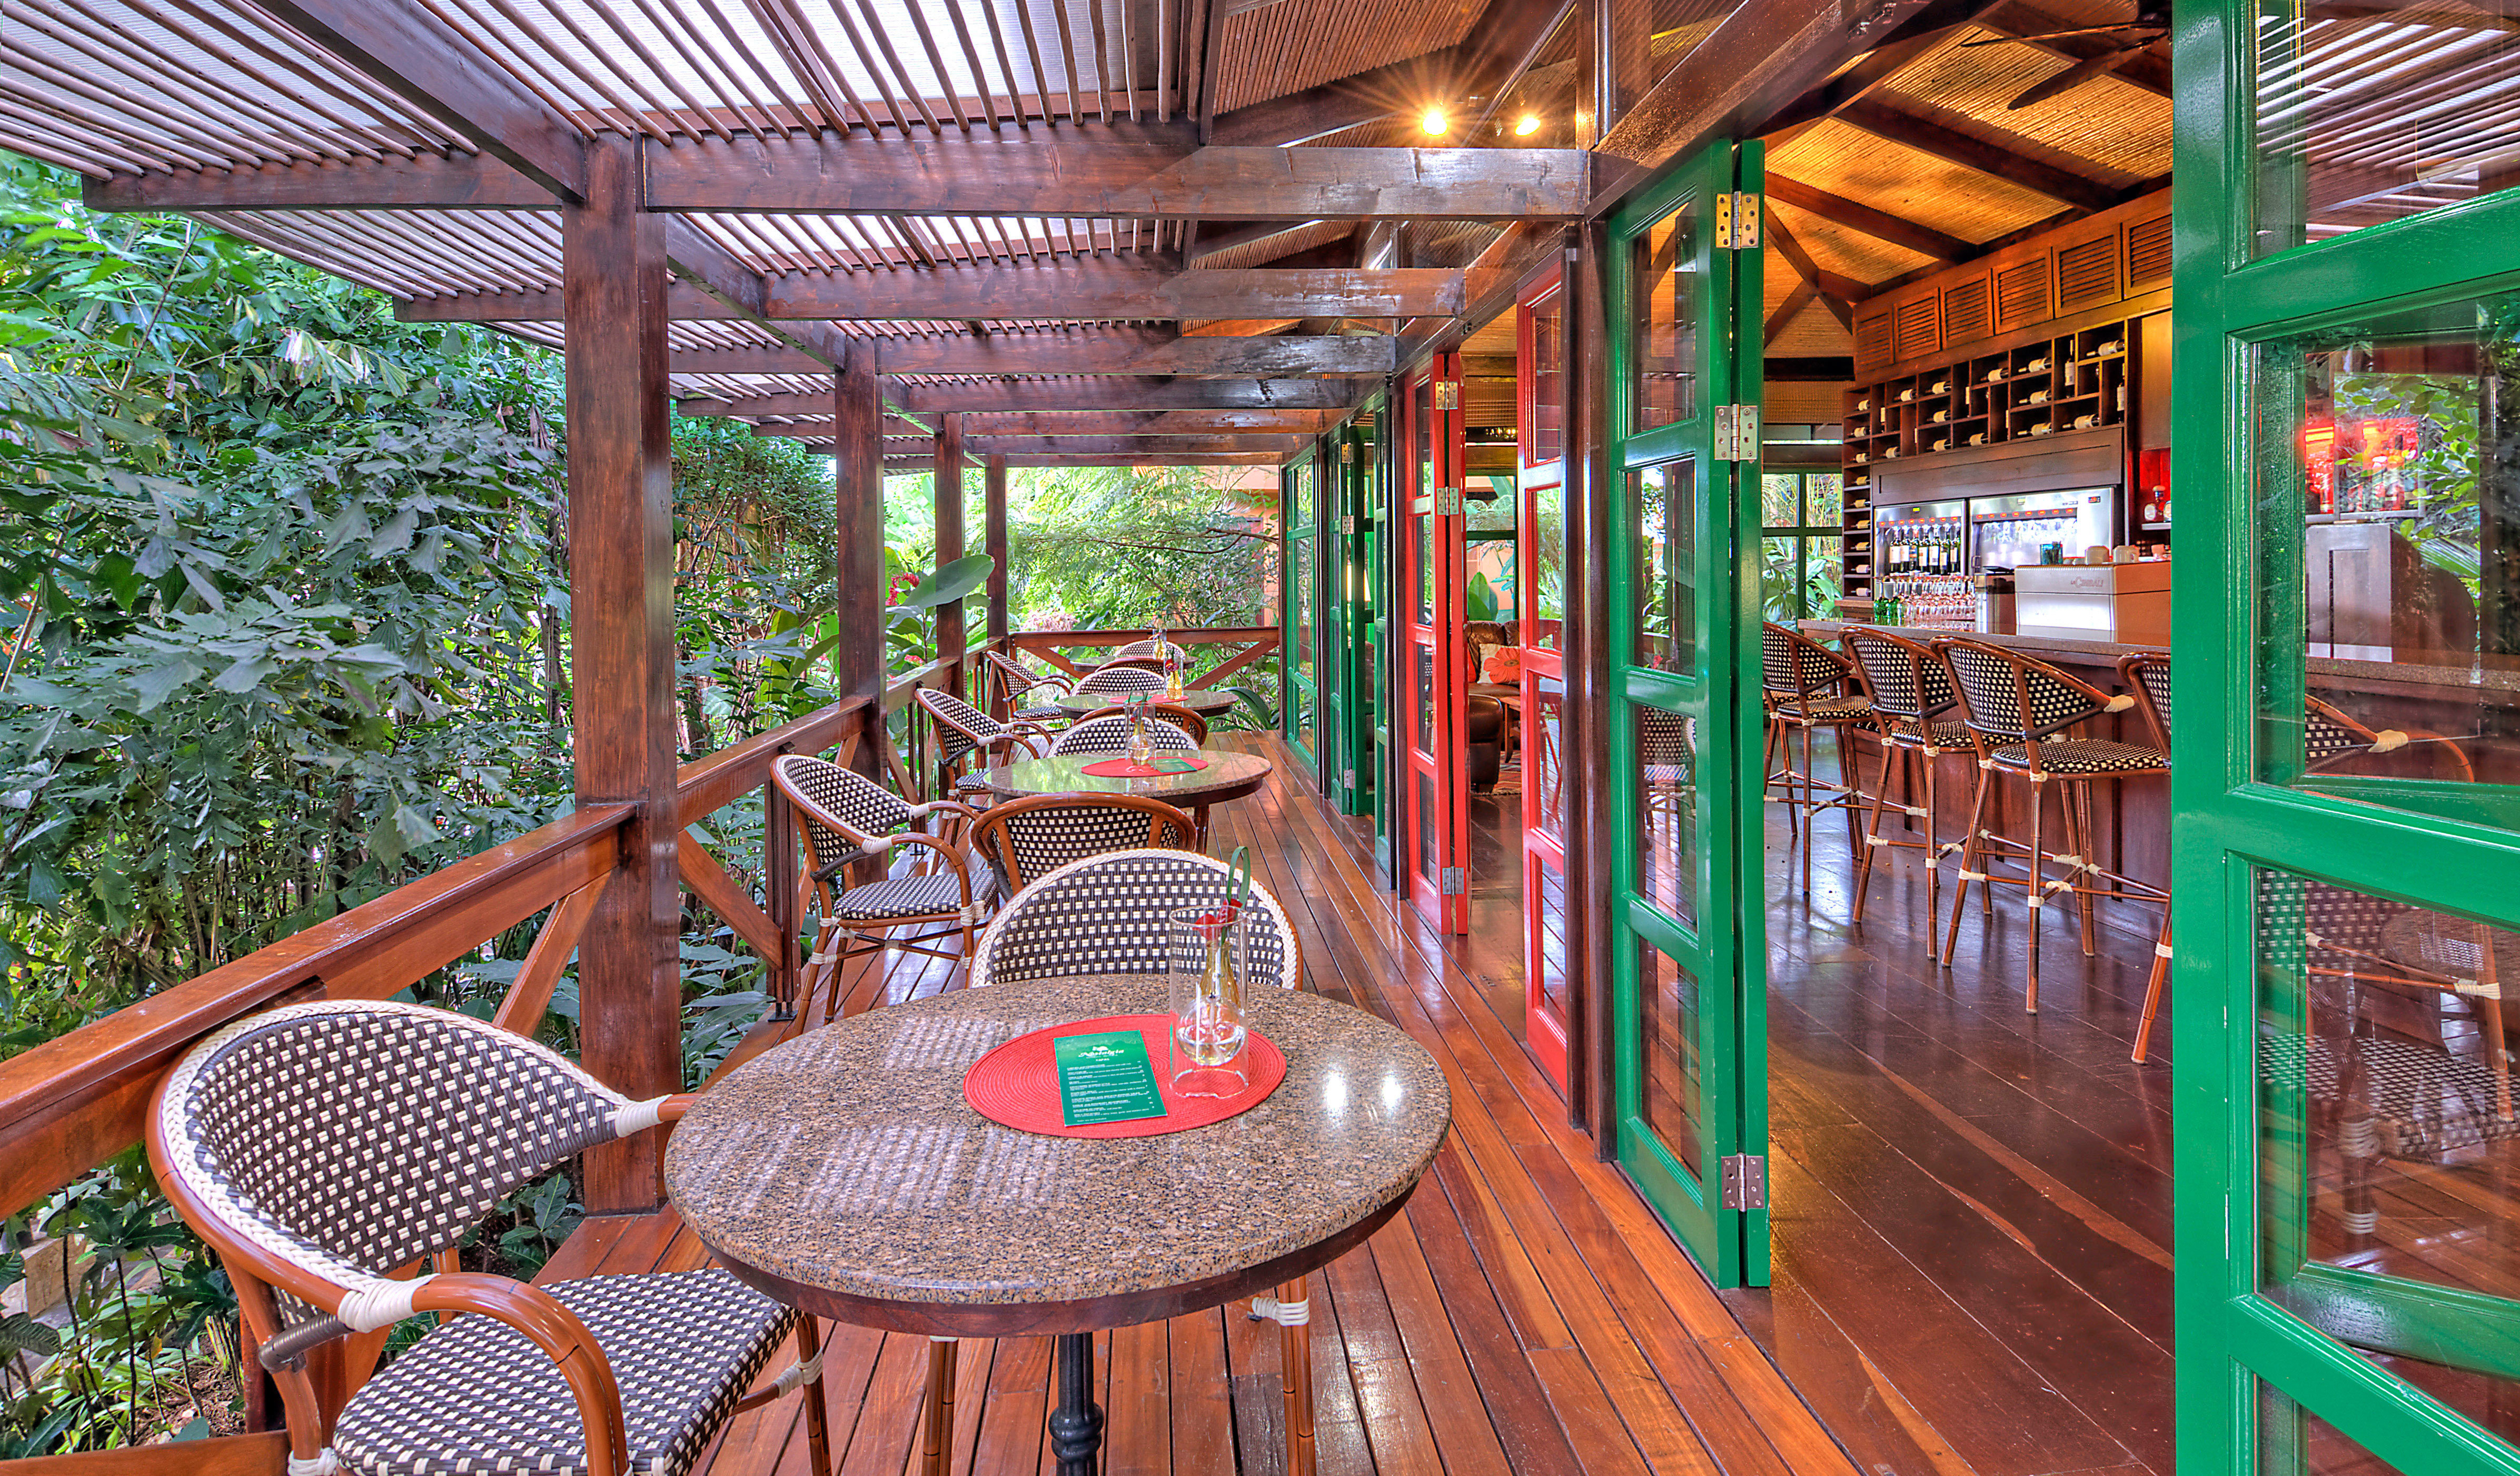 Country Dining Drink Eat Eco Jungle Romantic Rustic Scenic views chair building Resort restaurant outdoor structure amusement park cottage porch